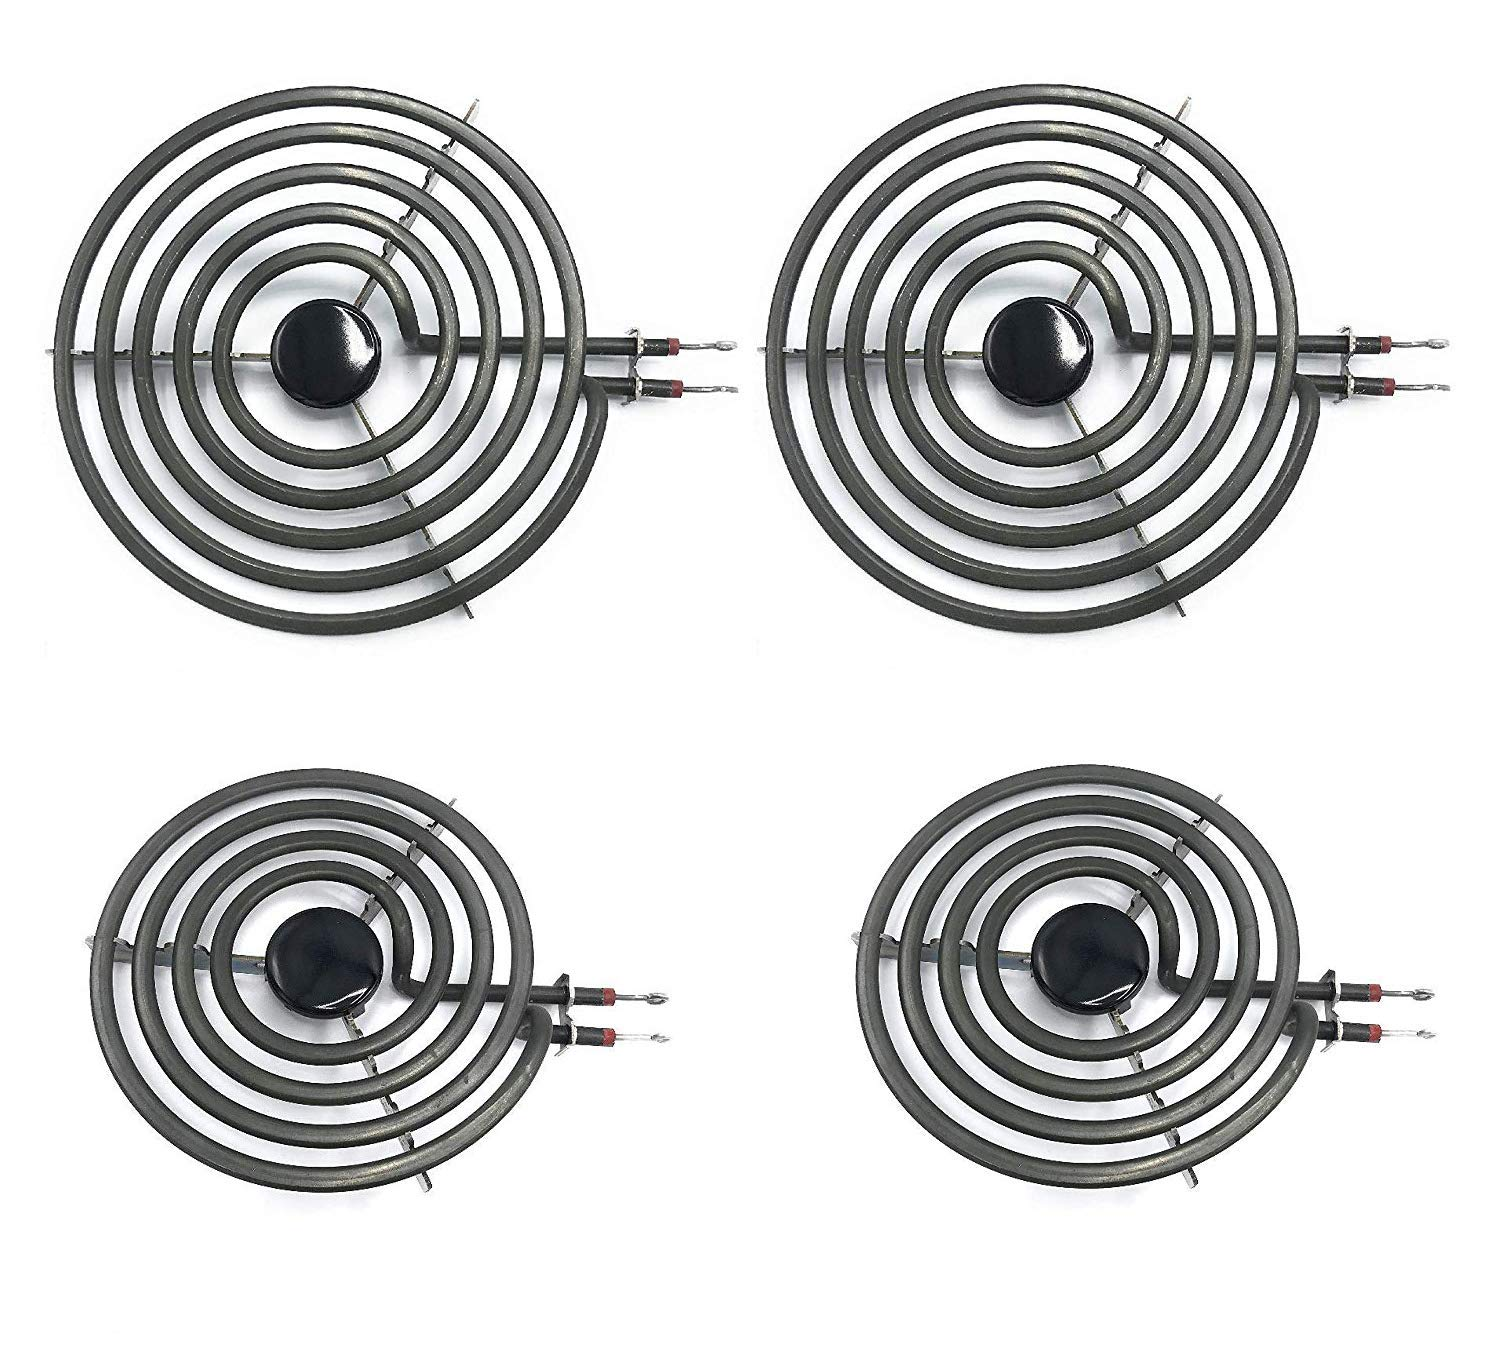 "Siwdoy (Pack of 4) MP22YA Electric Range Burner Element Unit Set - 2 pcs MP15YA 6"" and 2 pcs MP21YA 8"""